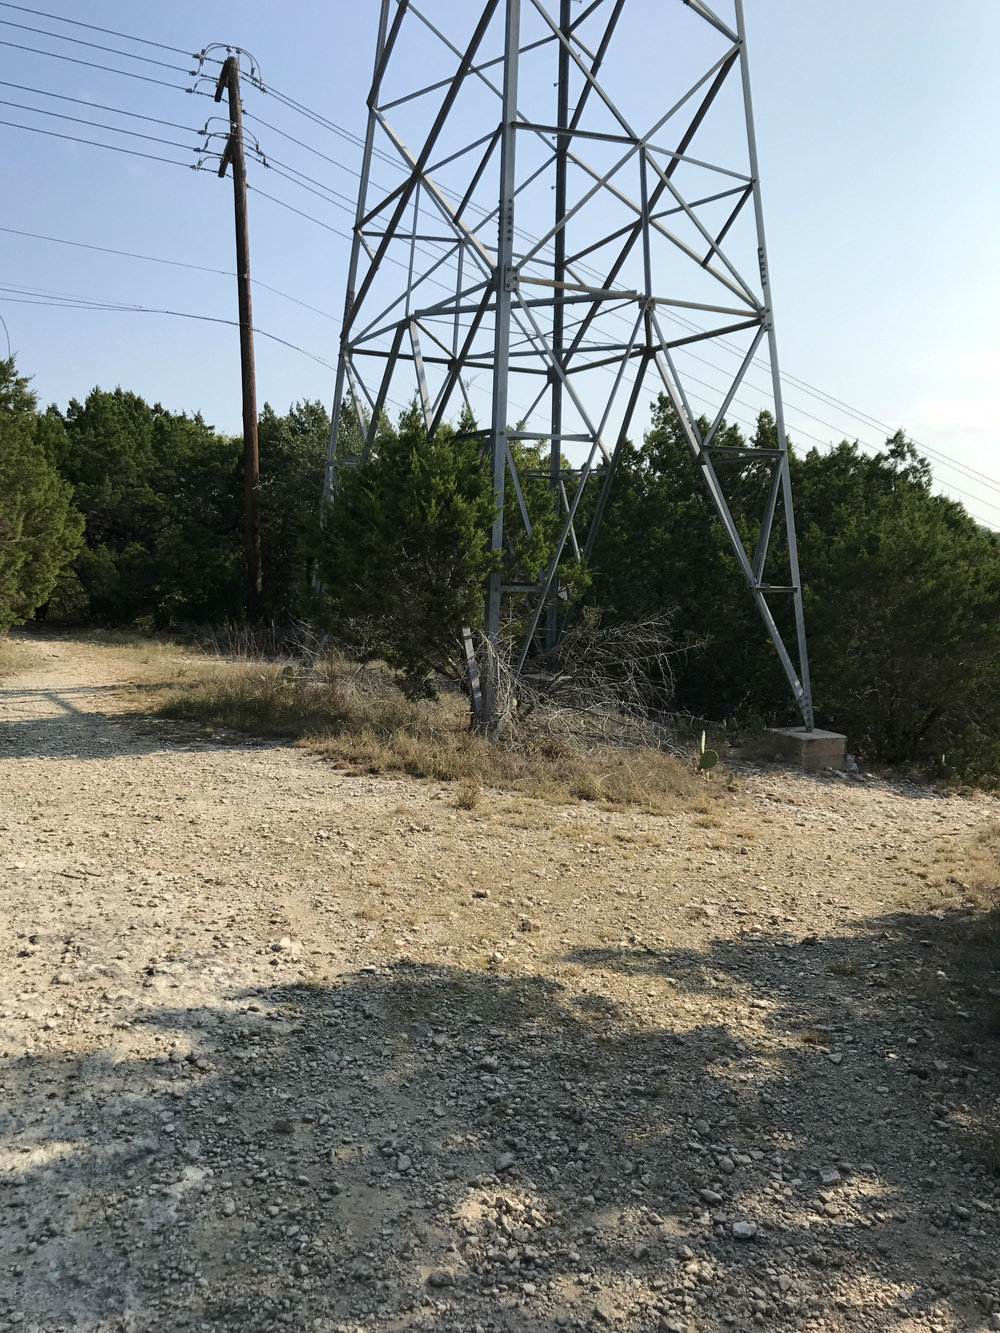 - After entering the trail branch leading to the trail head, you'll pass a power line stanchion (pictured above). The trail head is just passed the power line stanchion.At the trail head, you'll see a bench and a trail map. From the trail head, you'll head left on the blue route, following the arrows pictured in the image above.